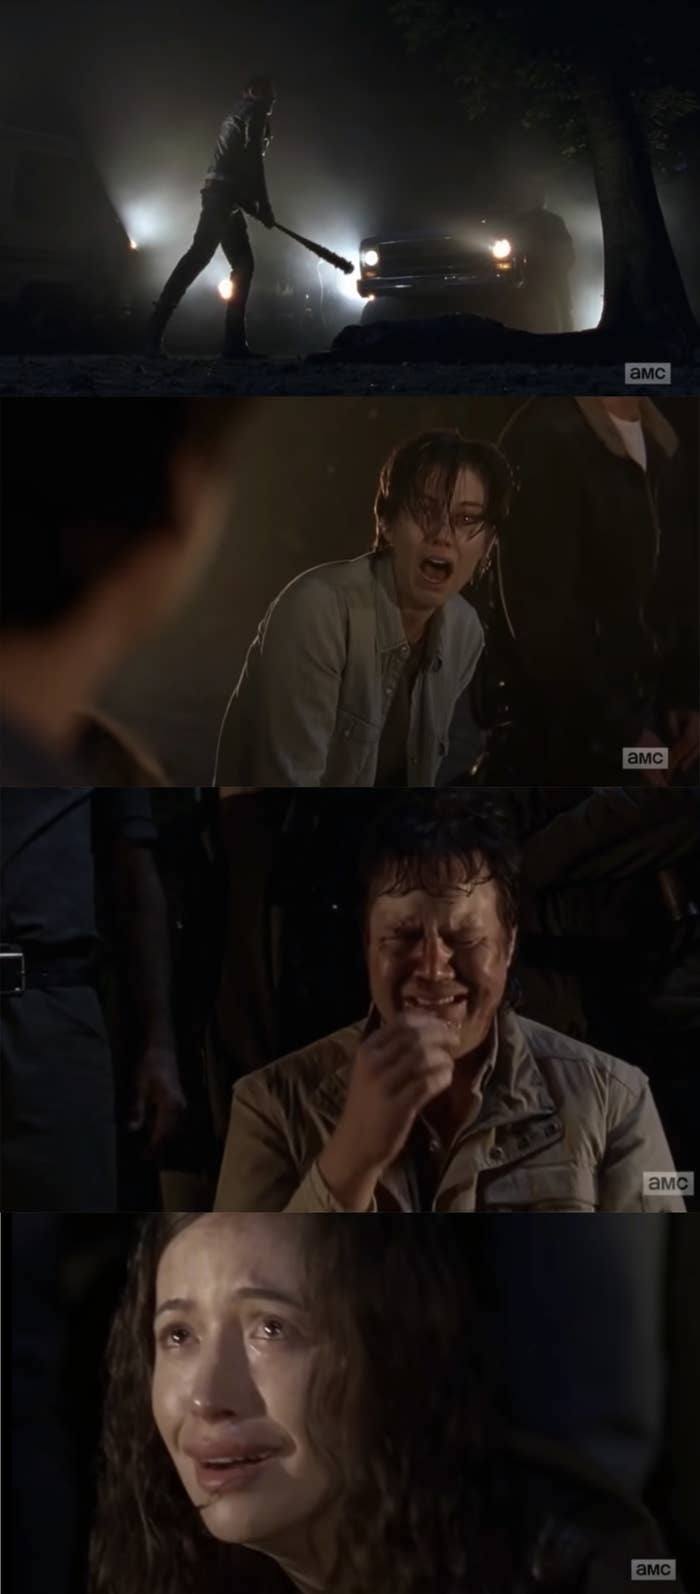 Negan beating Glenn with a bat while his friends and family watch in horror.